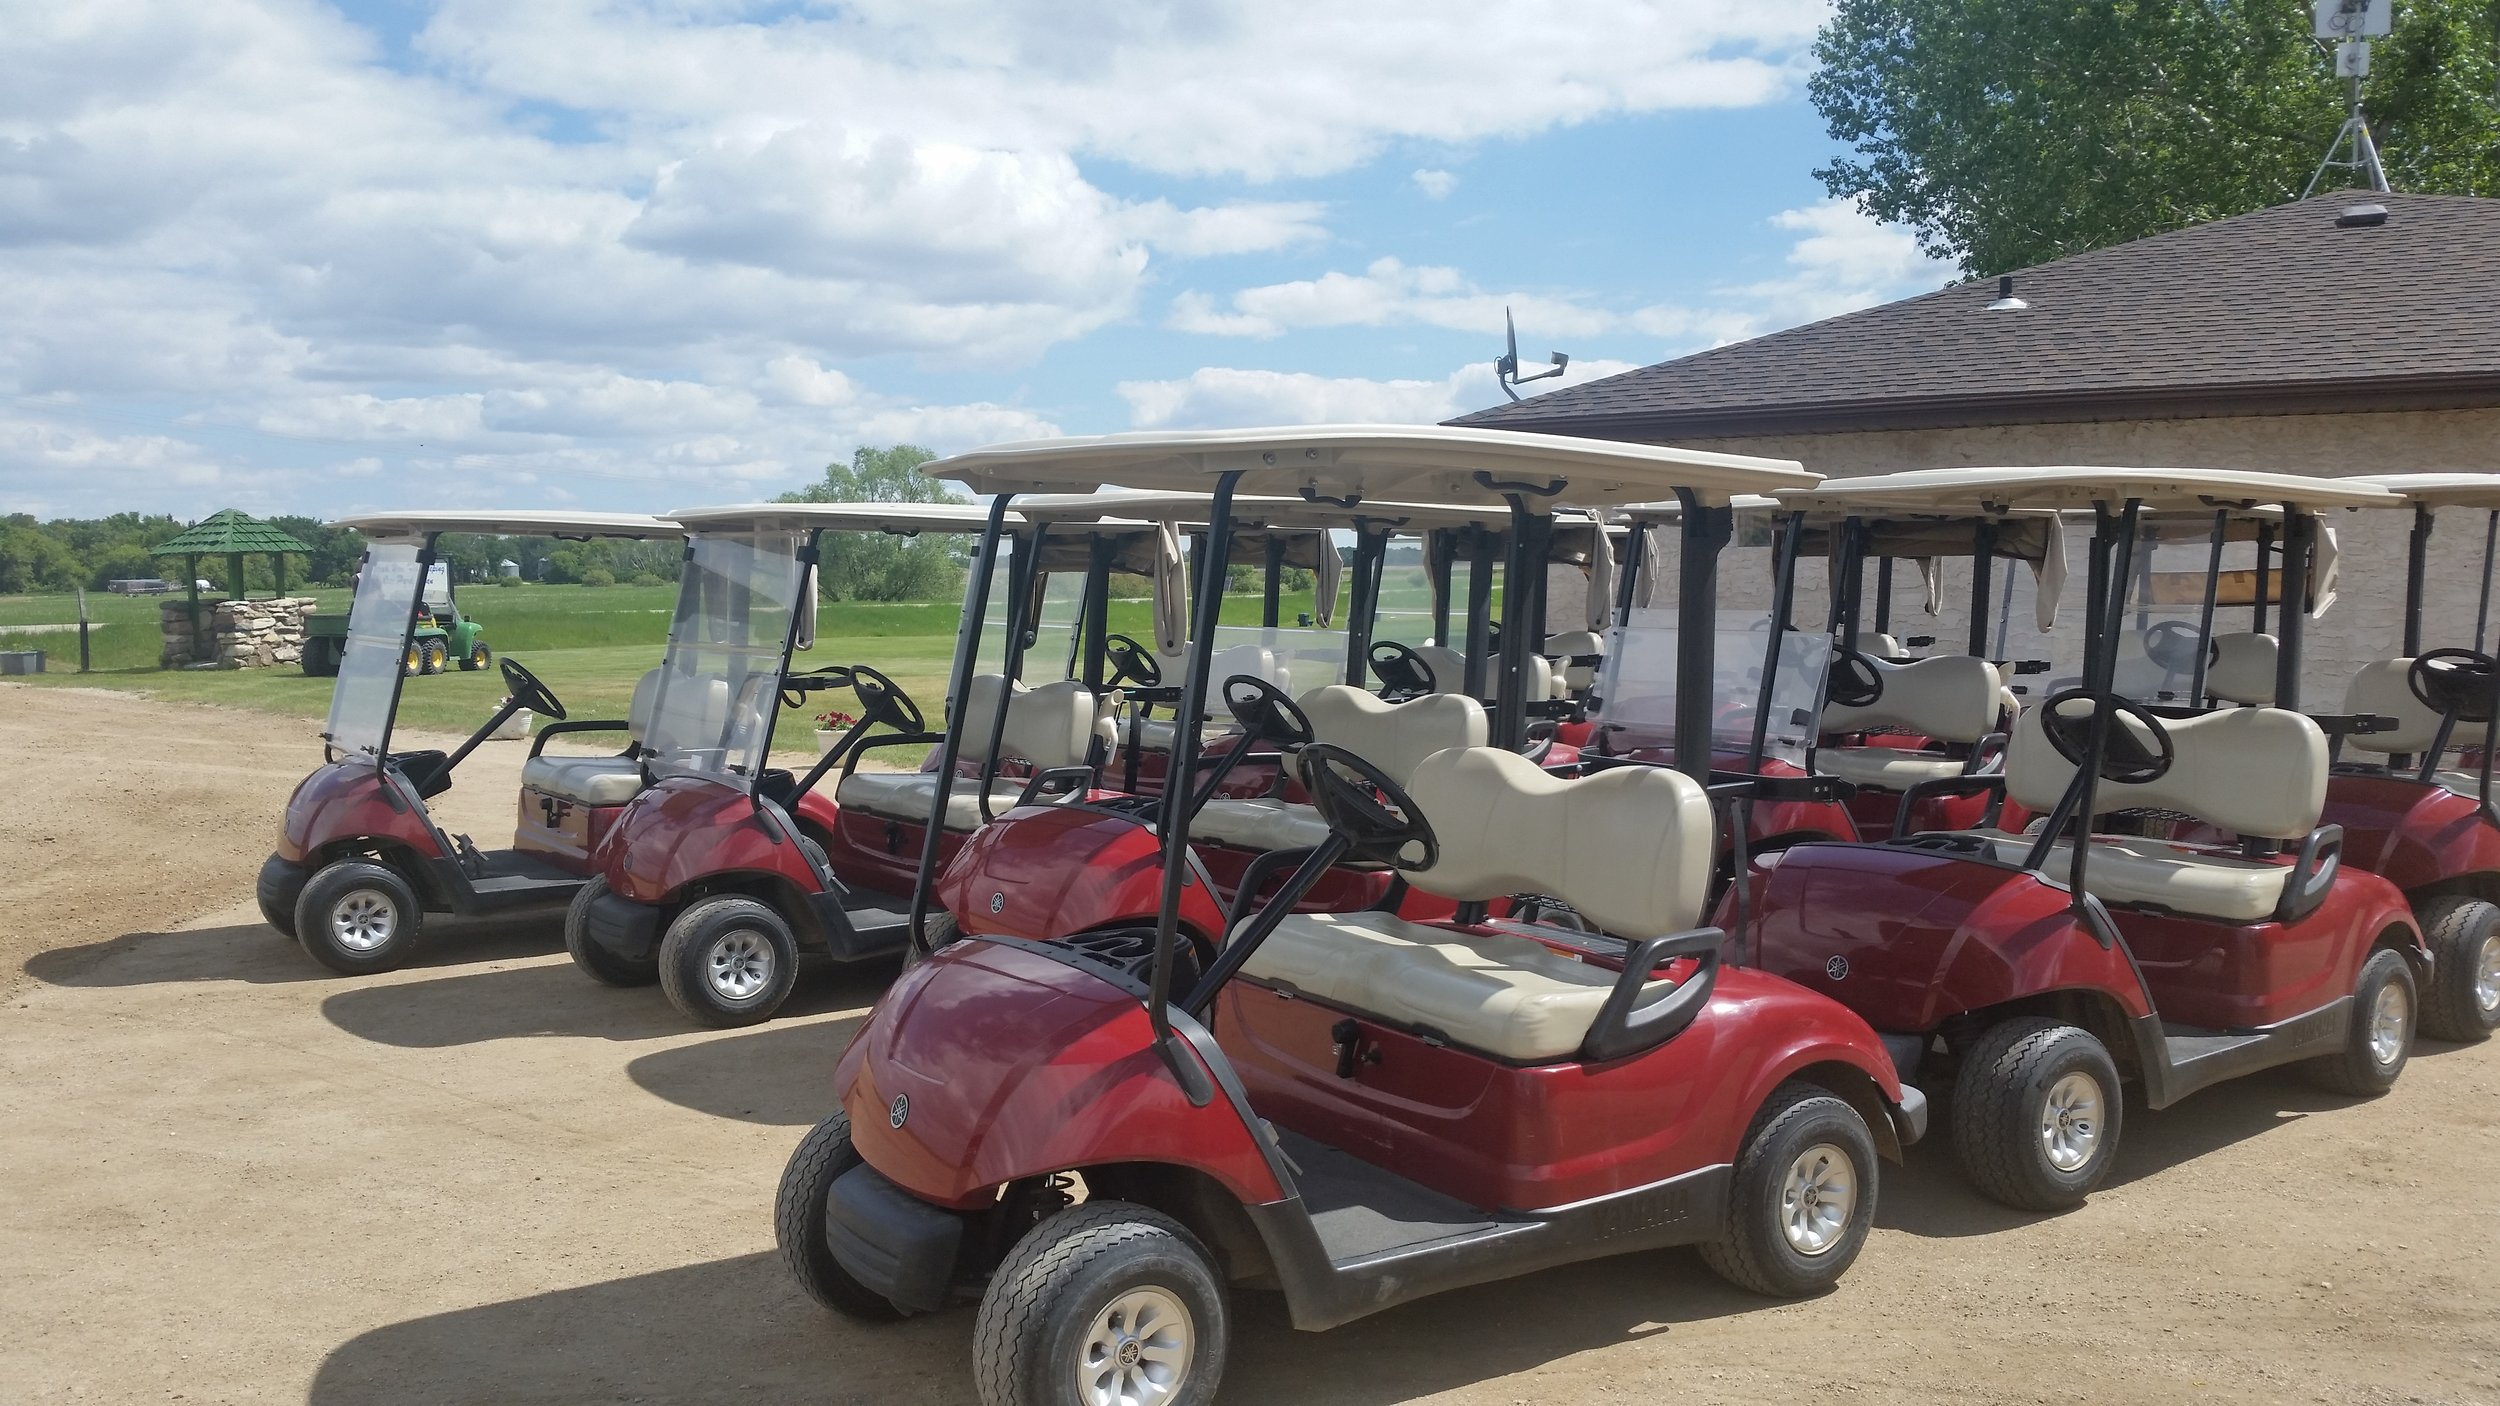 - We have 25 gas carts for rent.